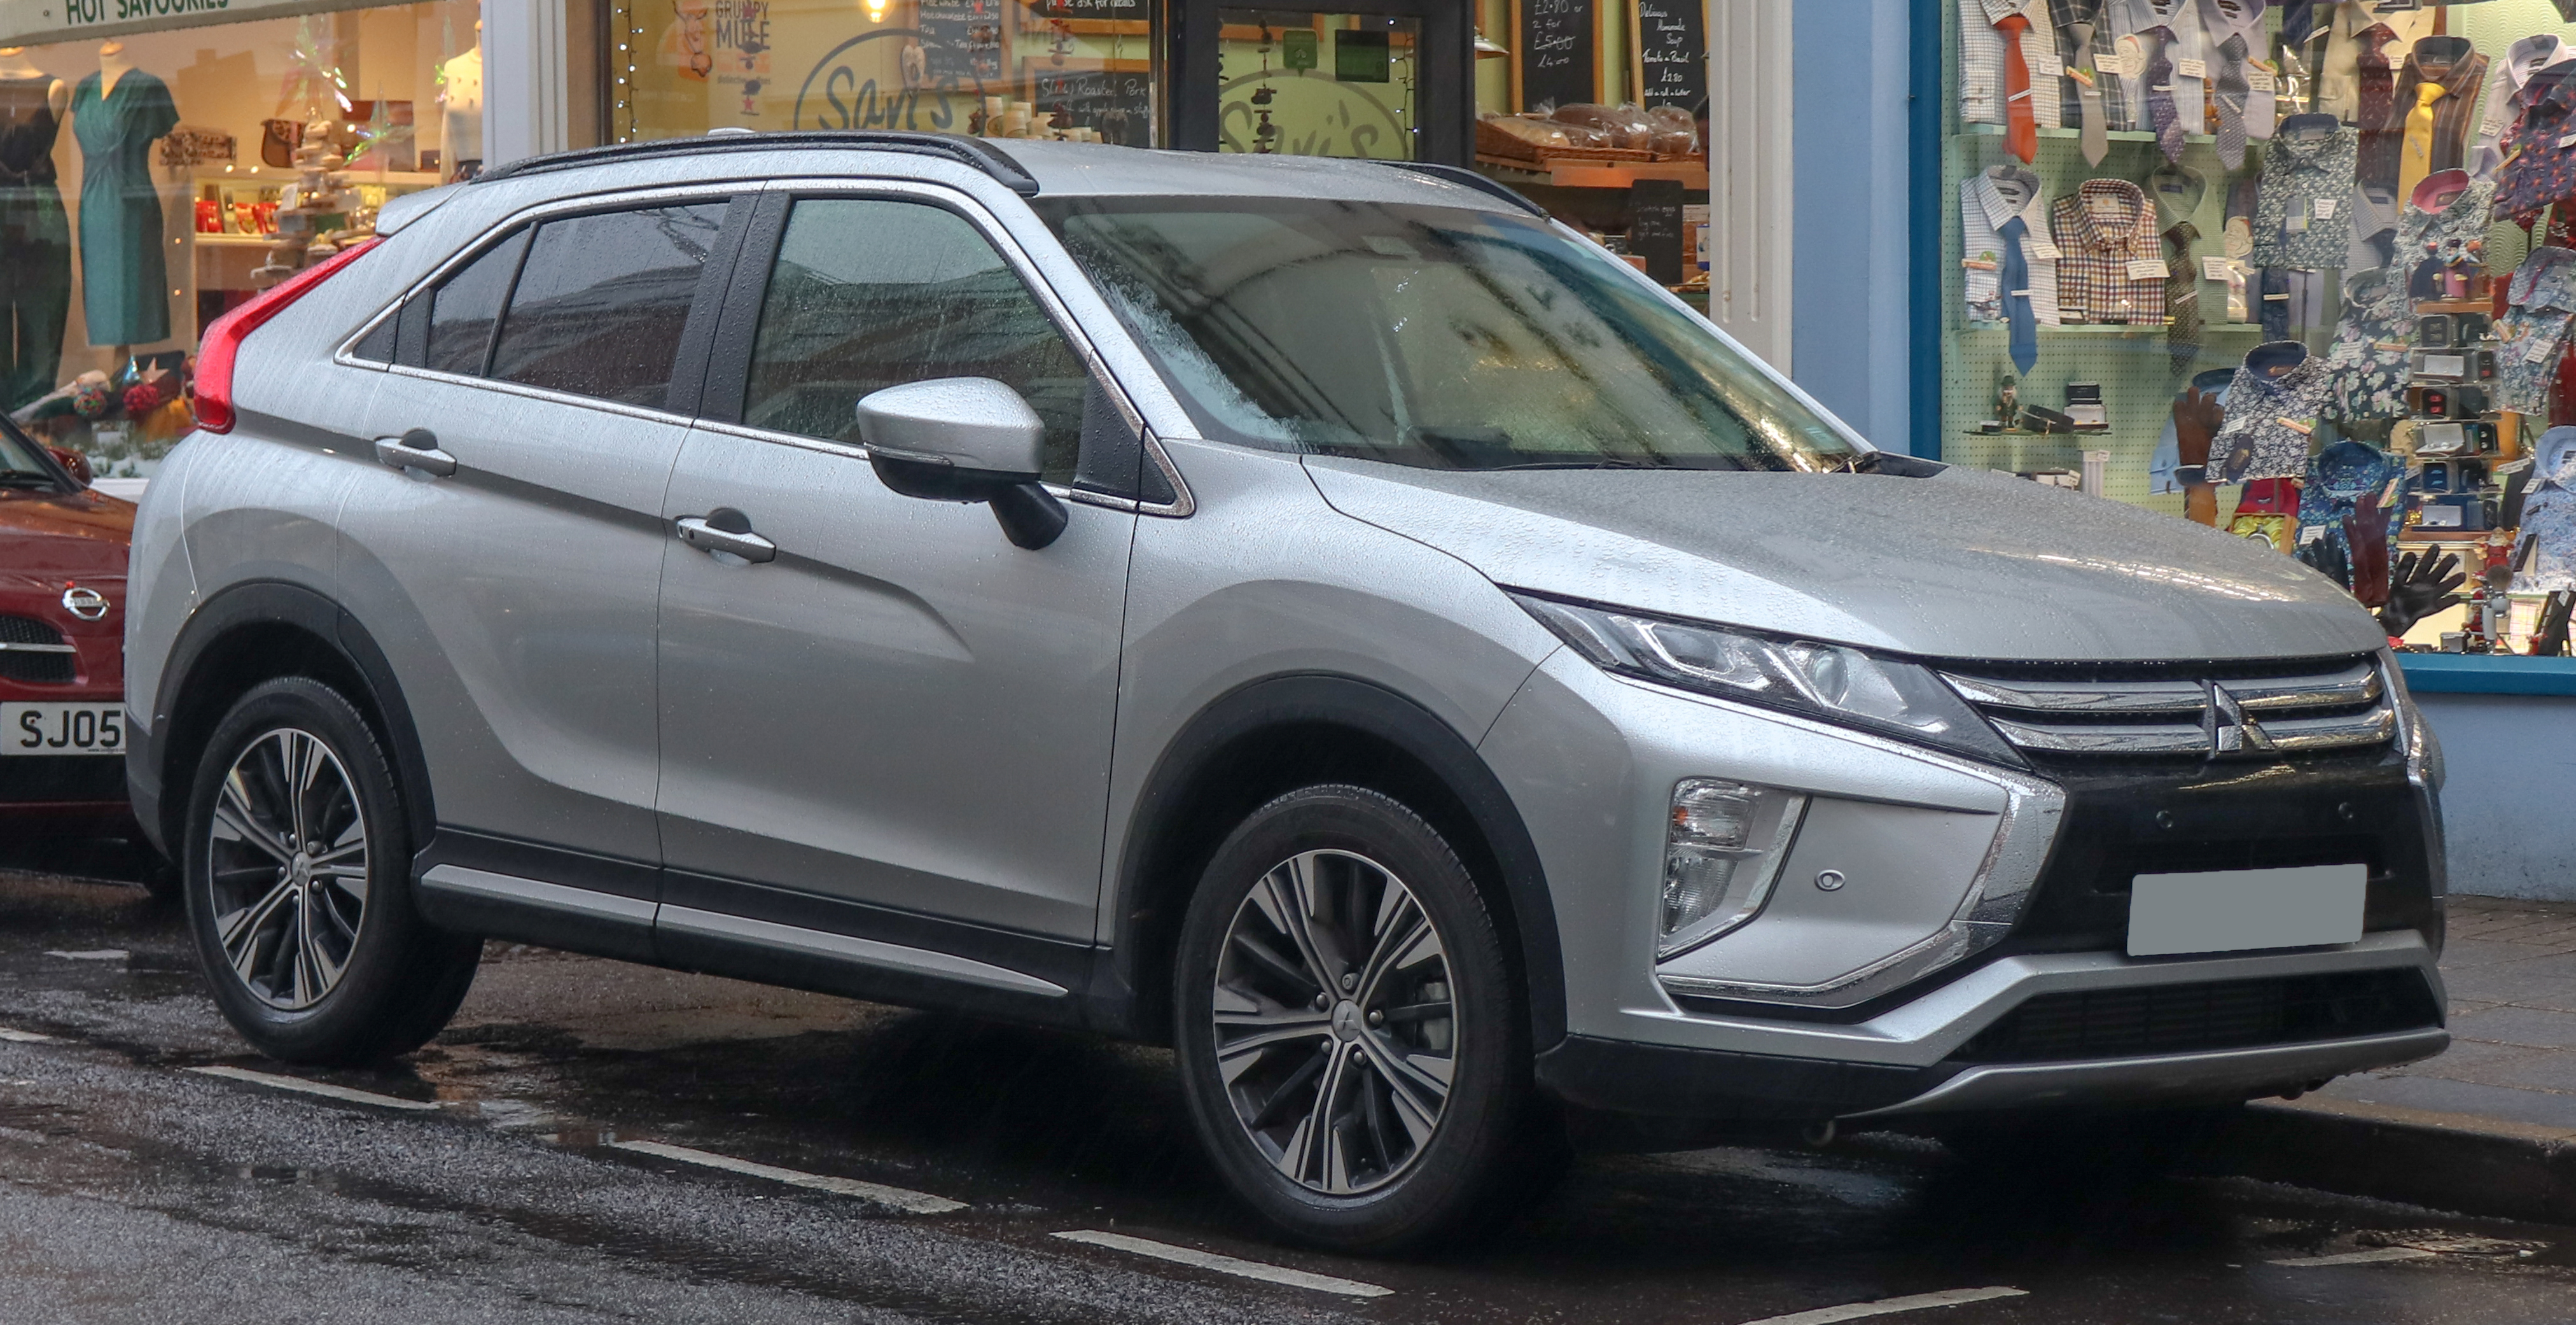 2019 Mitsubishi Eclipse Cross: Changes, Design, Specs >> Mitsubishi Eclipse Cross Wikipedia